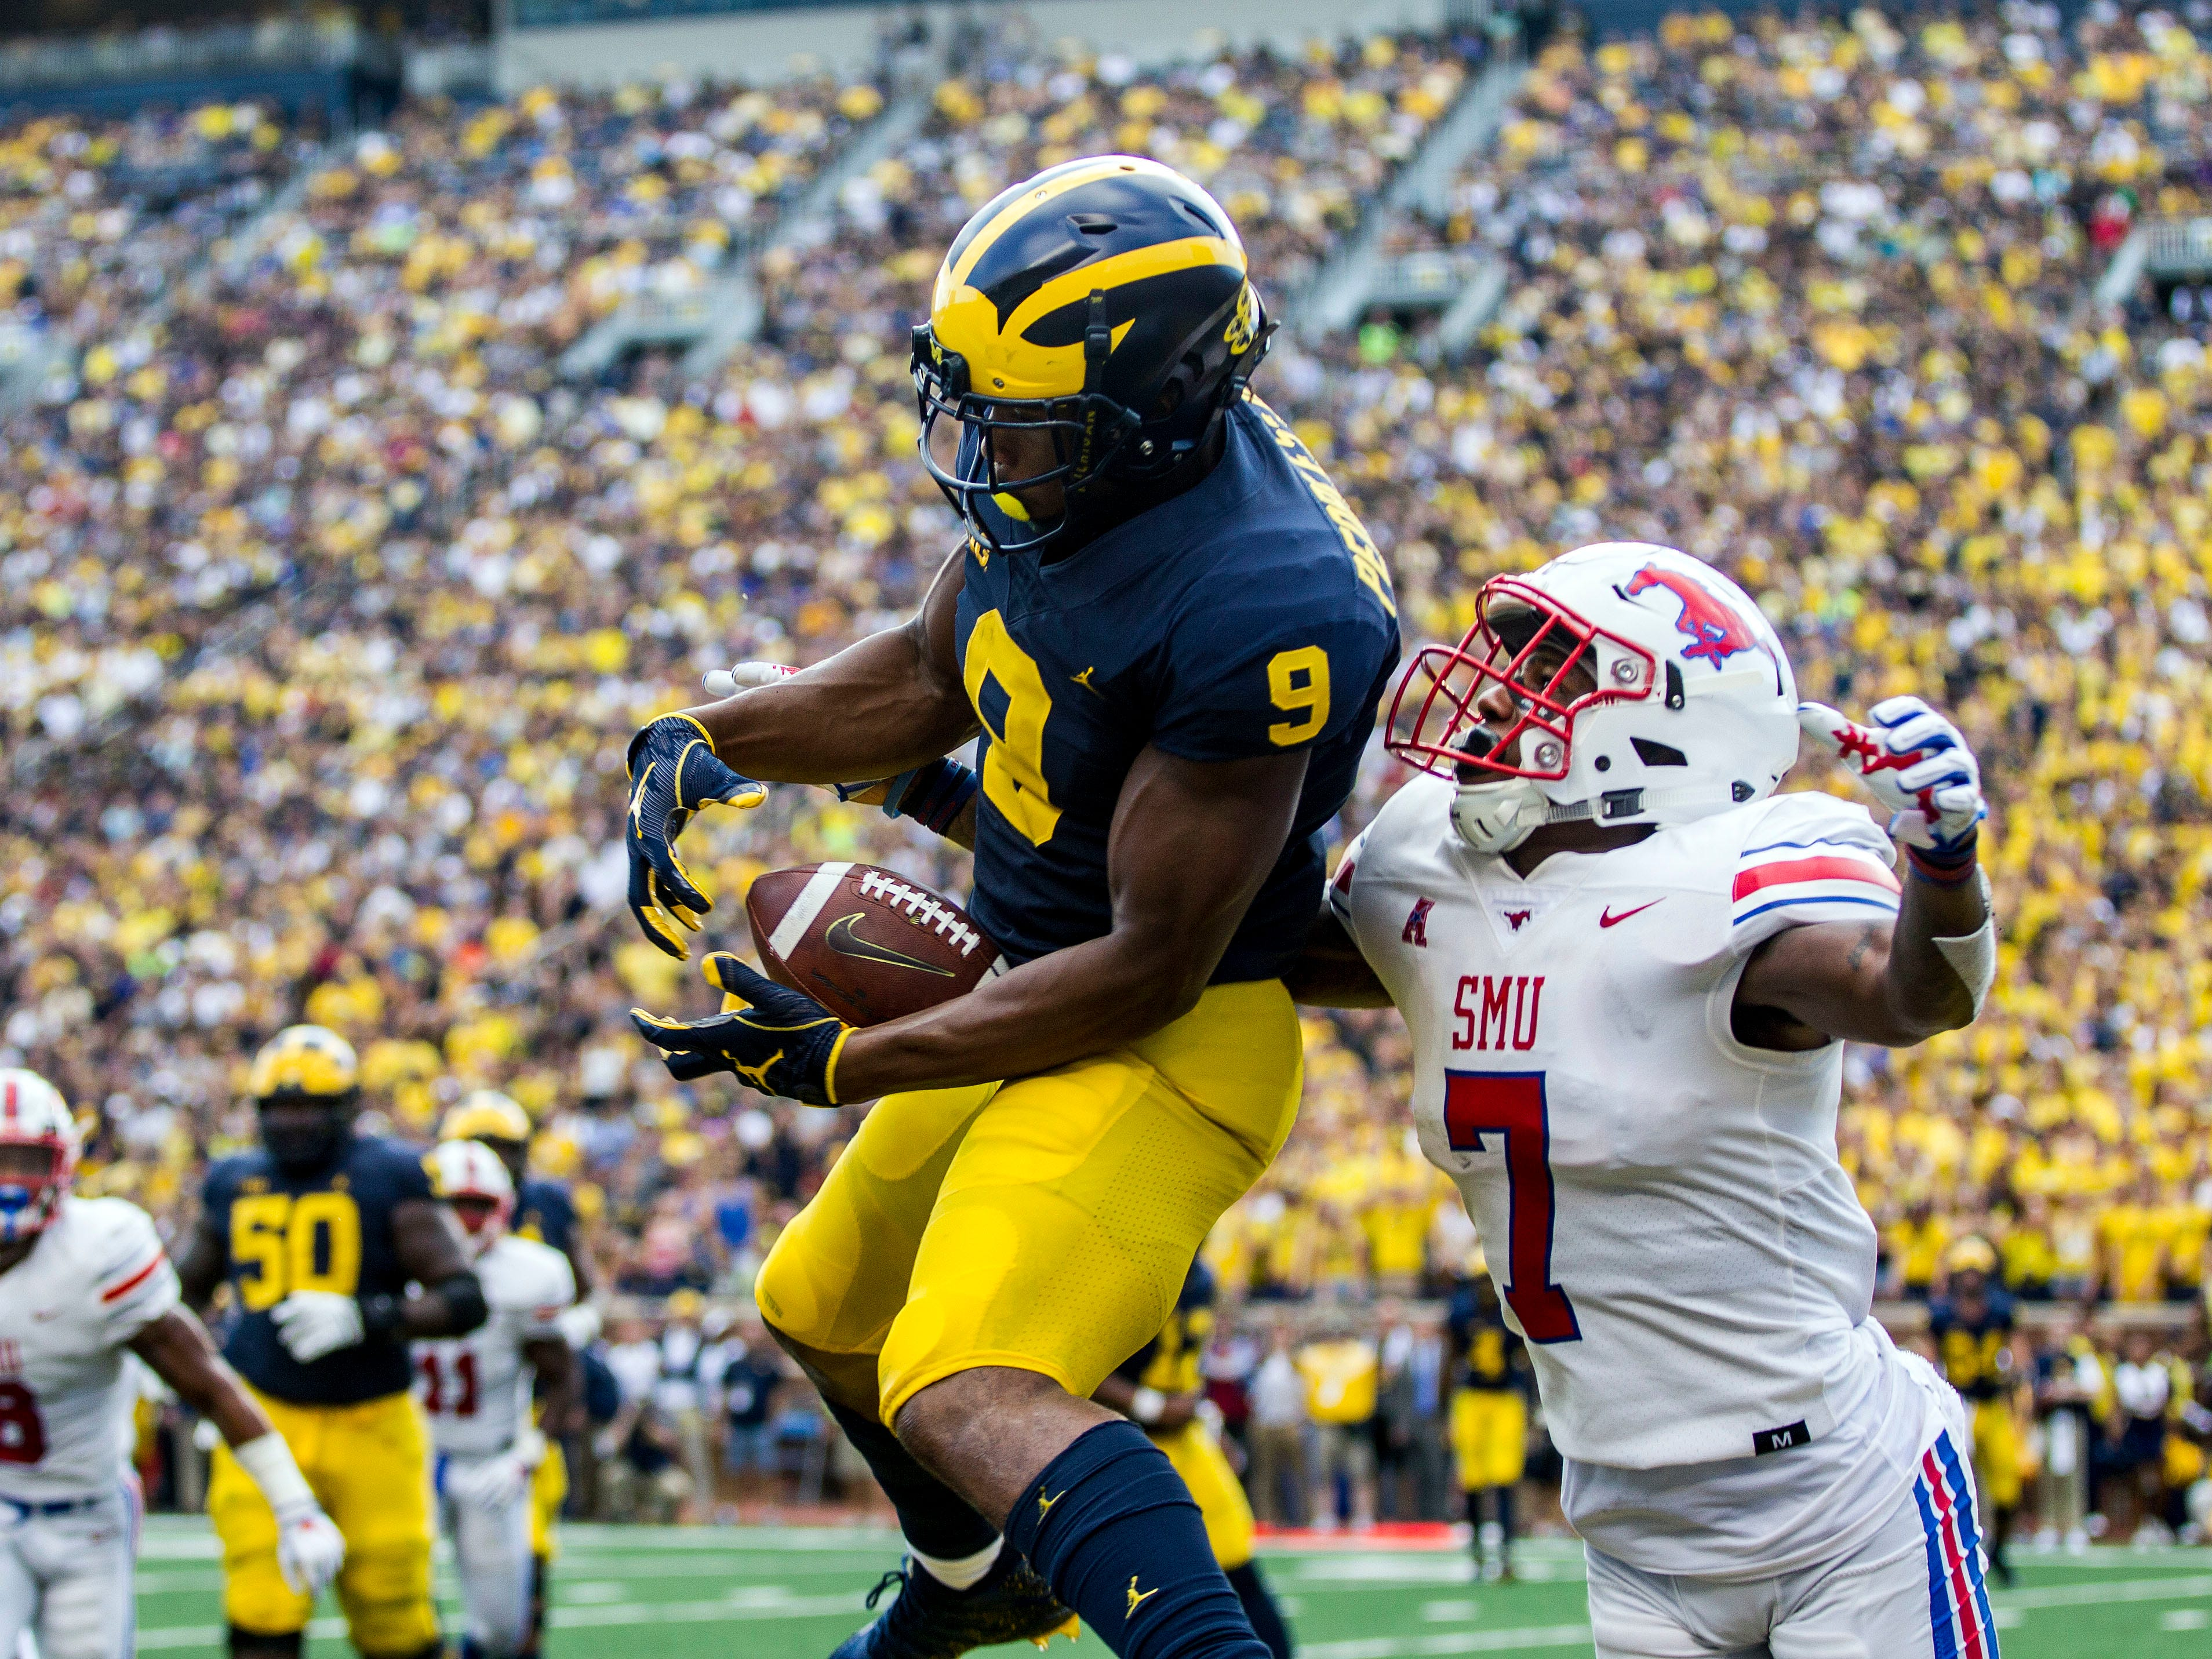 5. Michigan (2-1) – The Wolverines continued to do what they must, which is clean up on lesser competition and build some cohesion on the offensive side of the ball. However, trying to gauge exactly where the Wolverines stand is tough after starting slowly against SMU and committing 13 penalties. Nebraska comes to town next to open Big Ten play. Last week: 5.